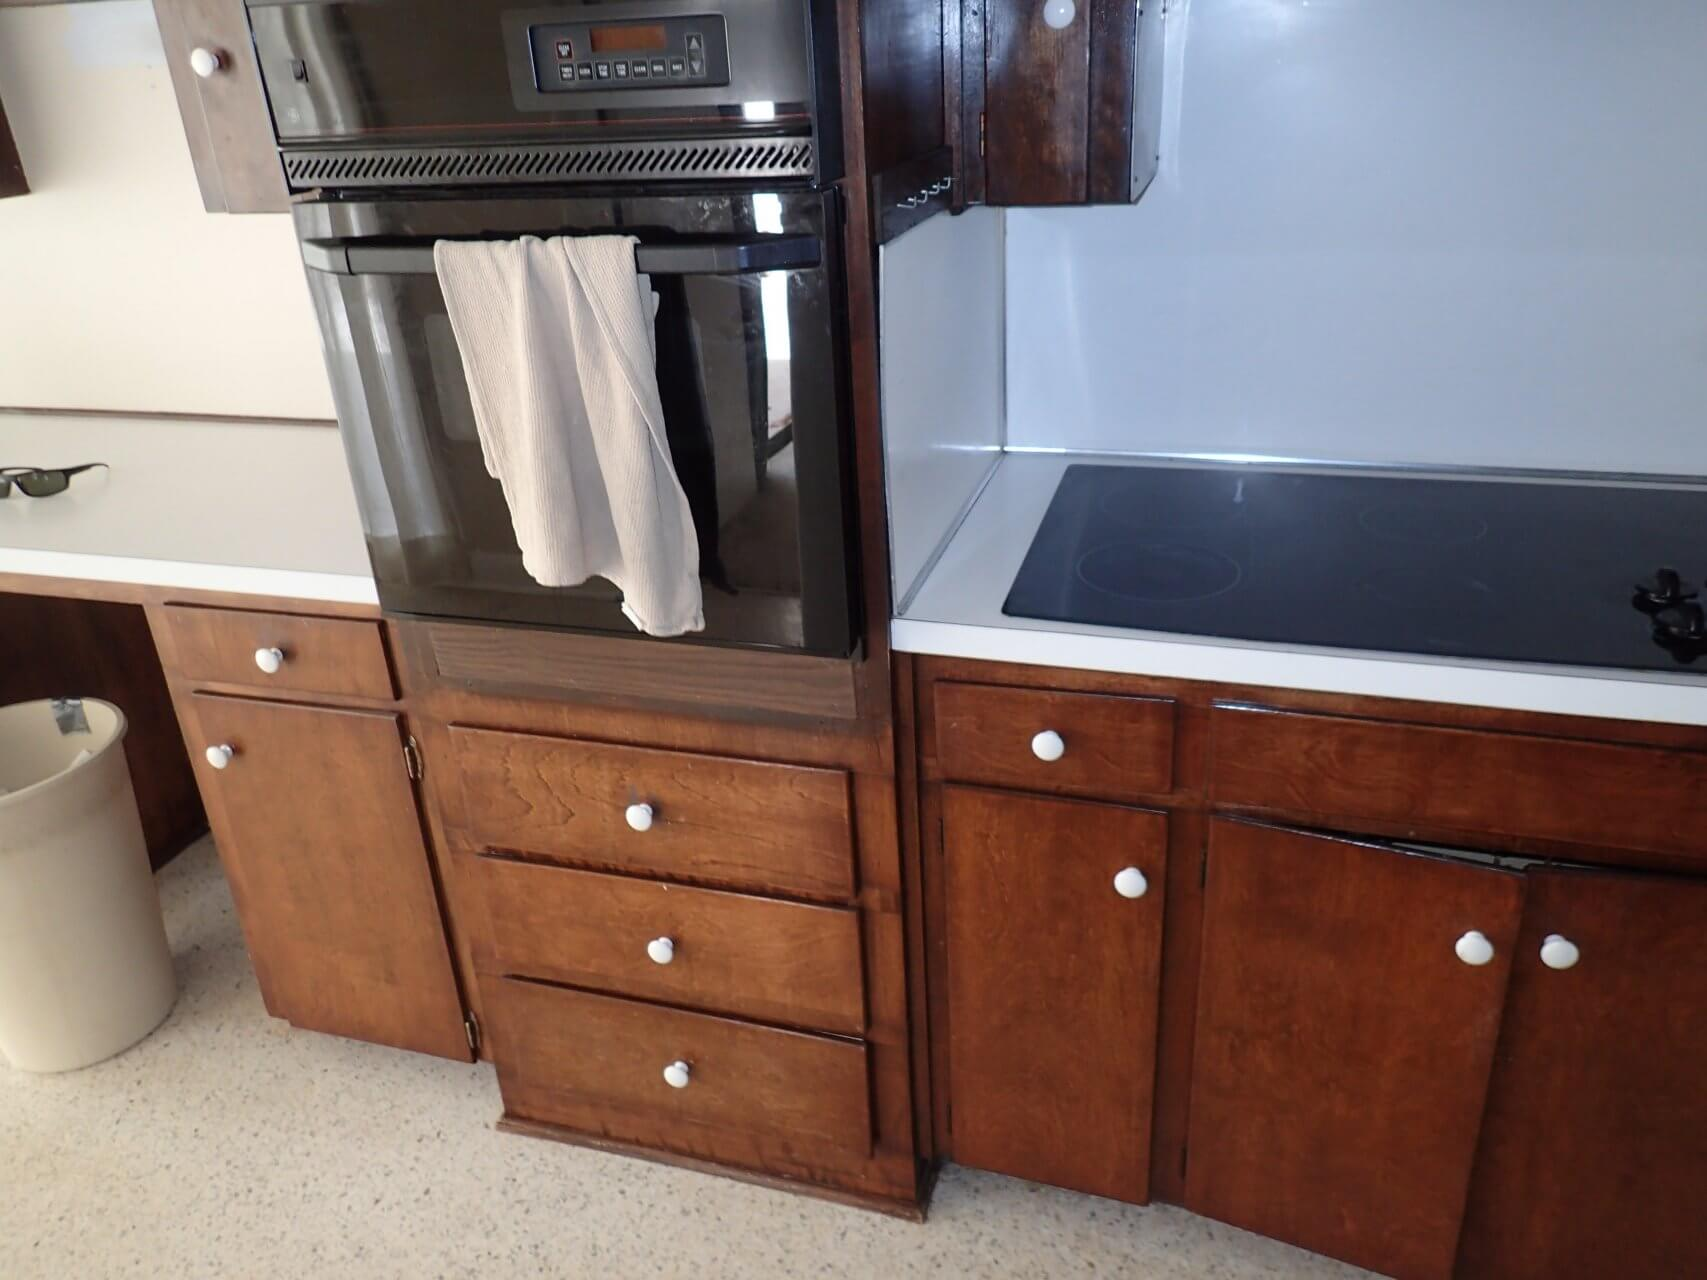 Before: Outdated dark brown kitchen cabinets with oven and microwave in kitchen remodel